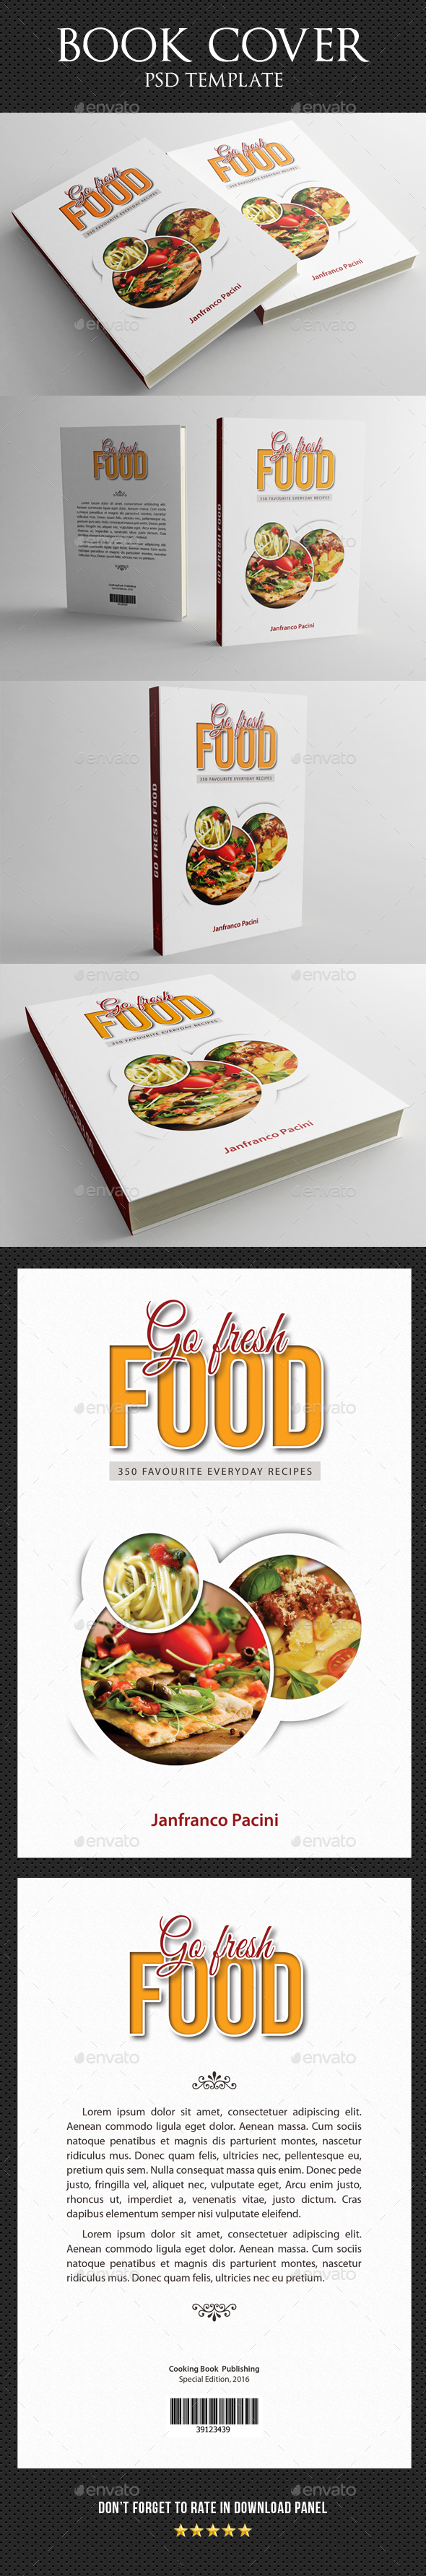 Cook Food Book Cover Template V2 - Miscellaneous Print Templates